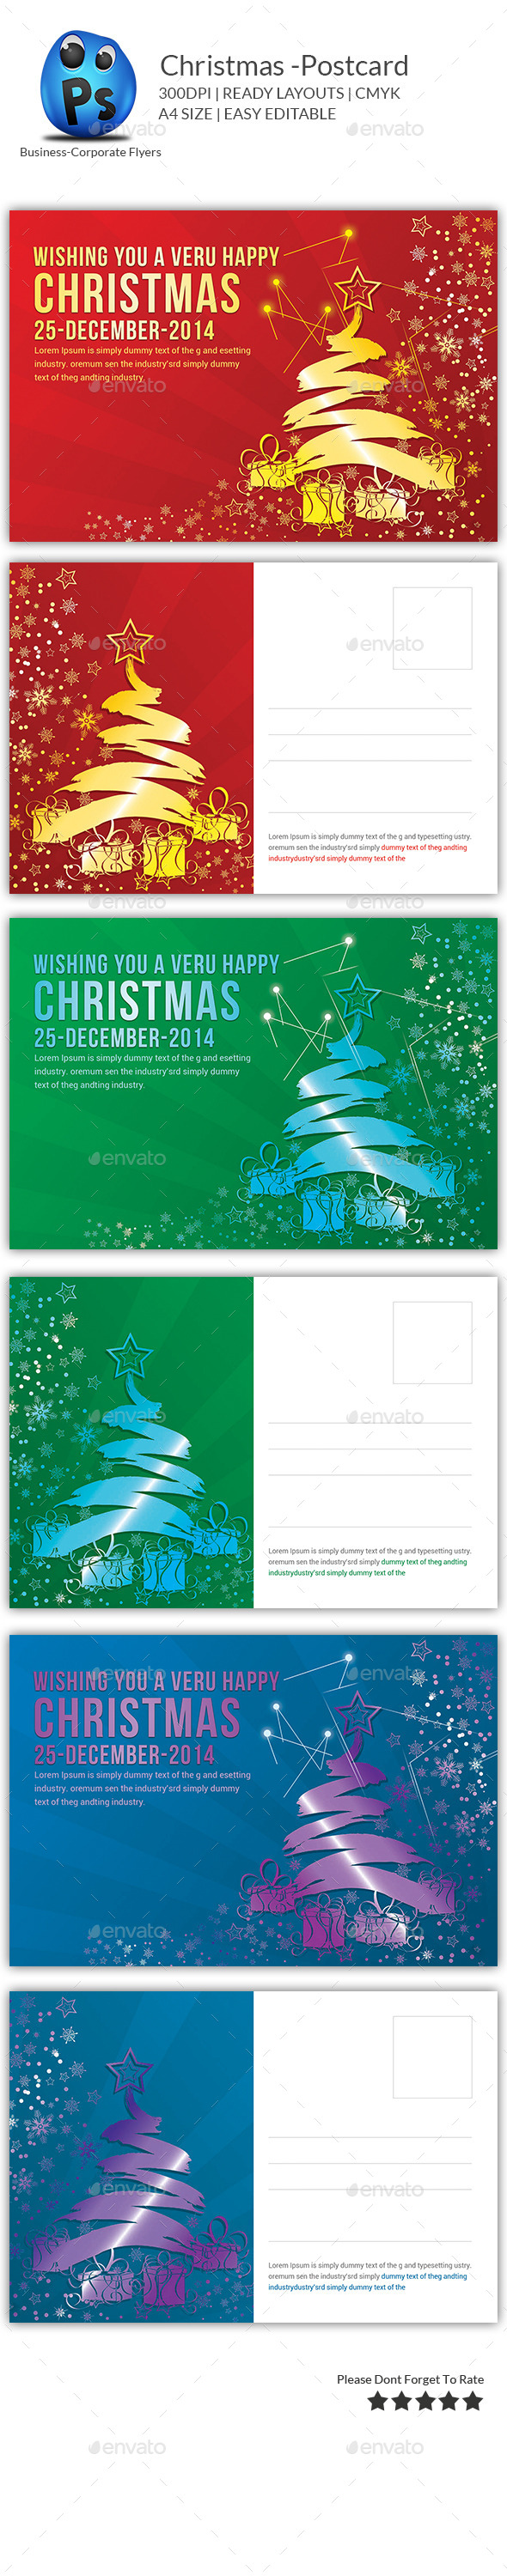 GraphicRiver Christmas Postcard Templates 9735739